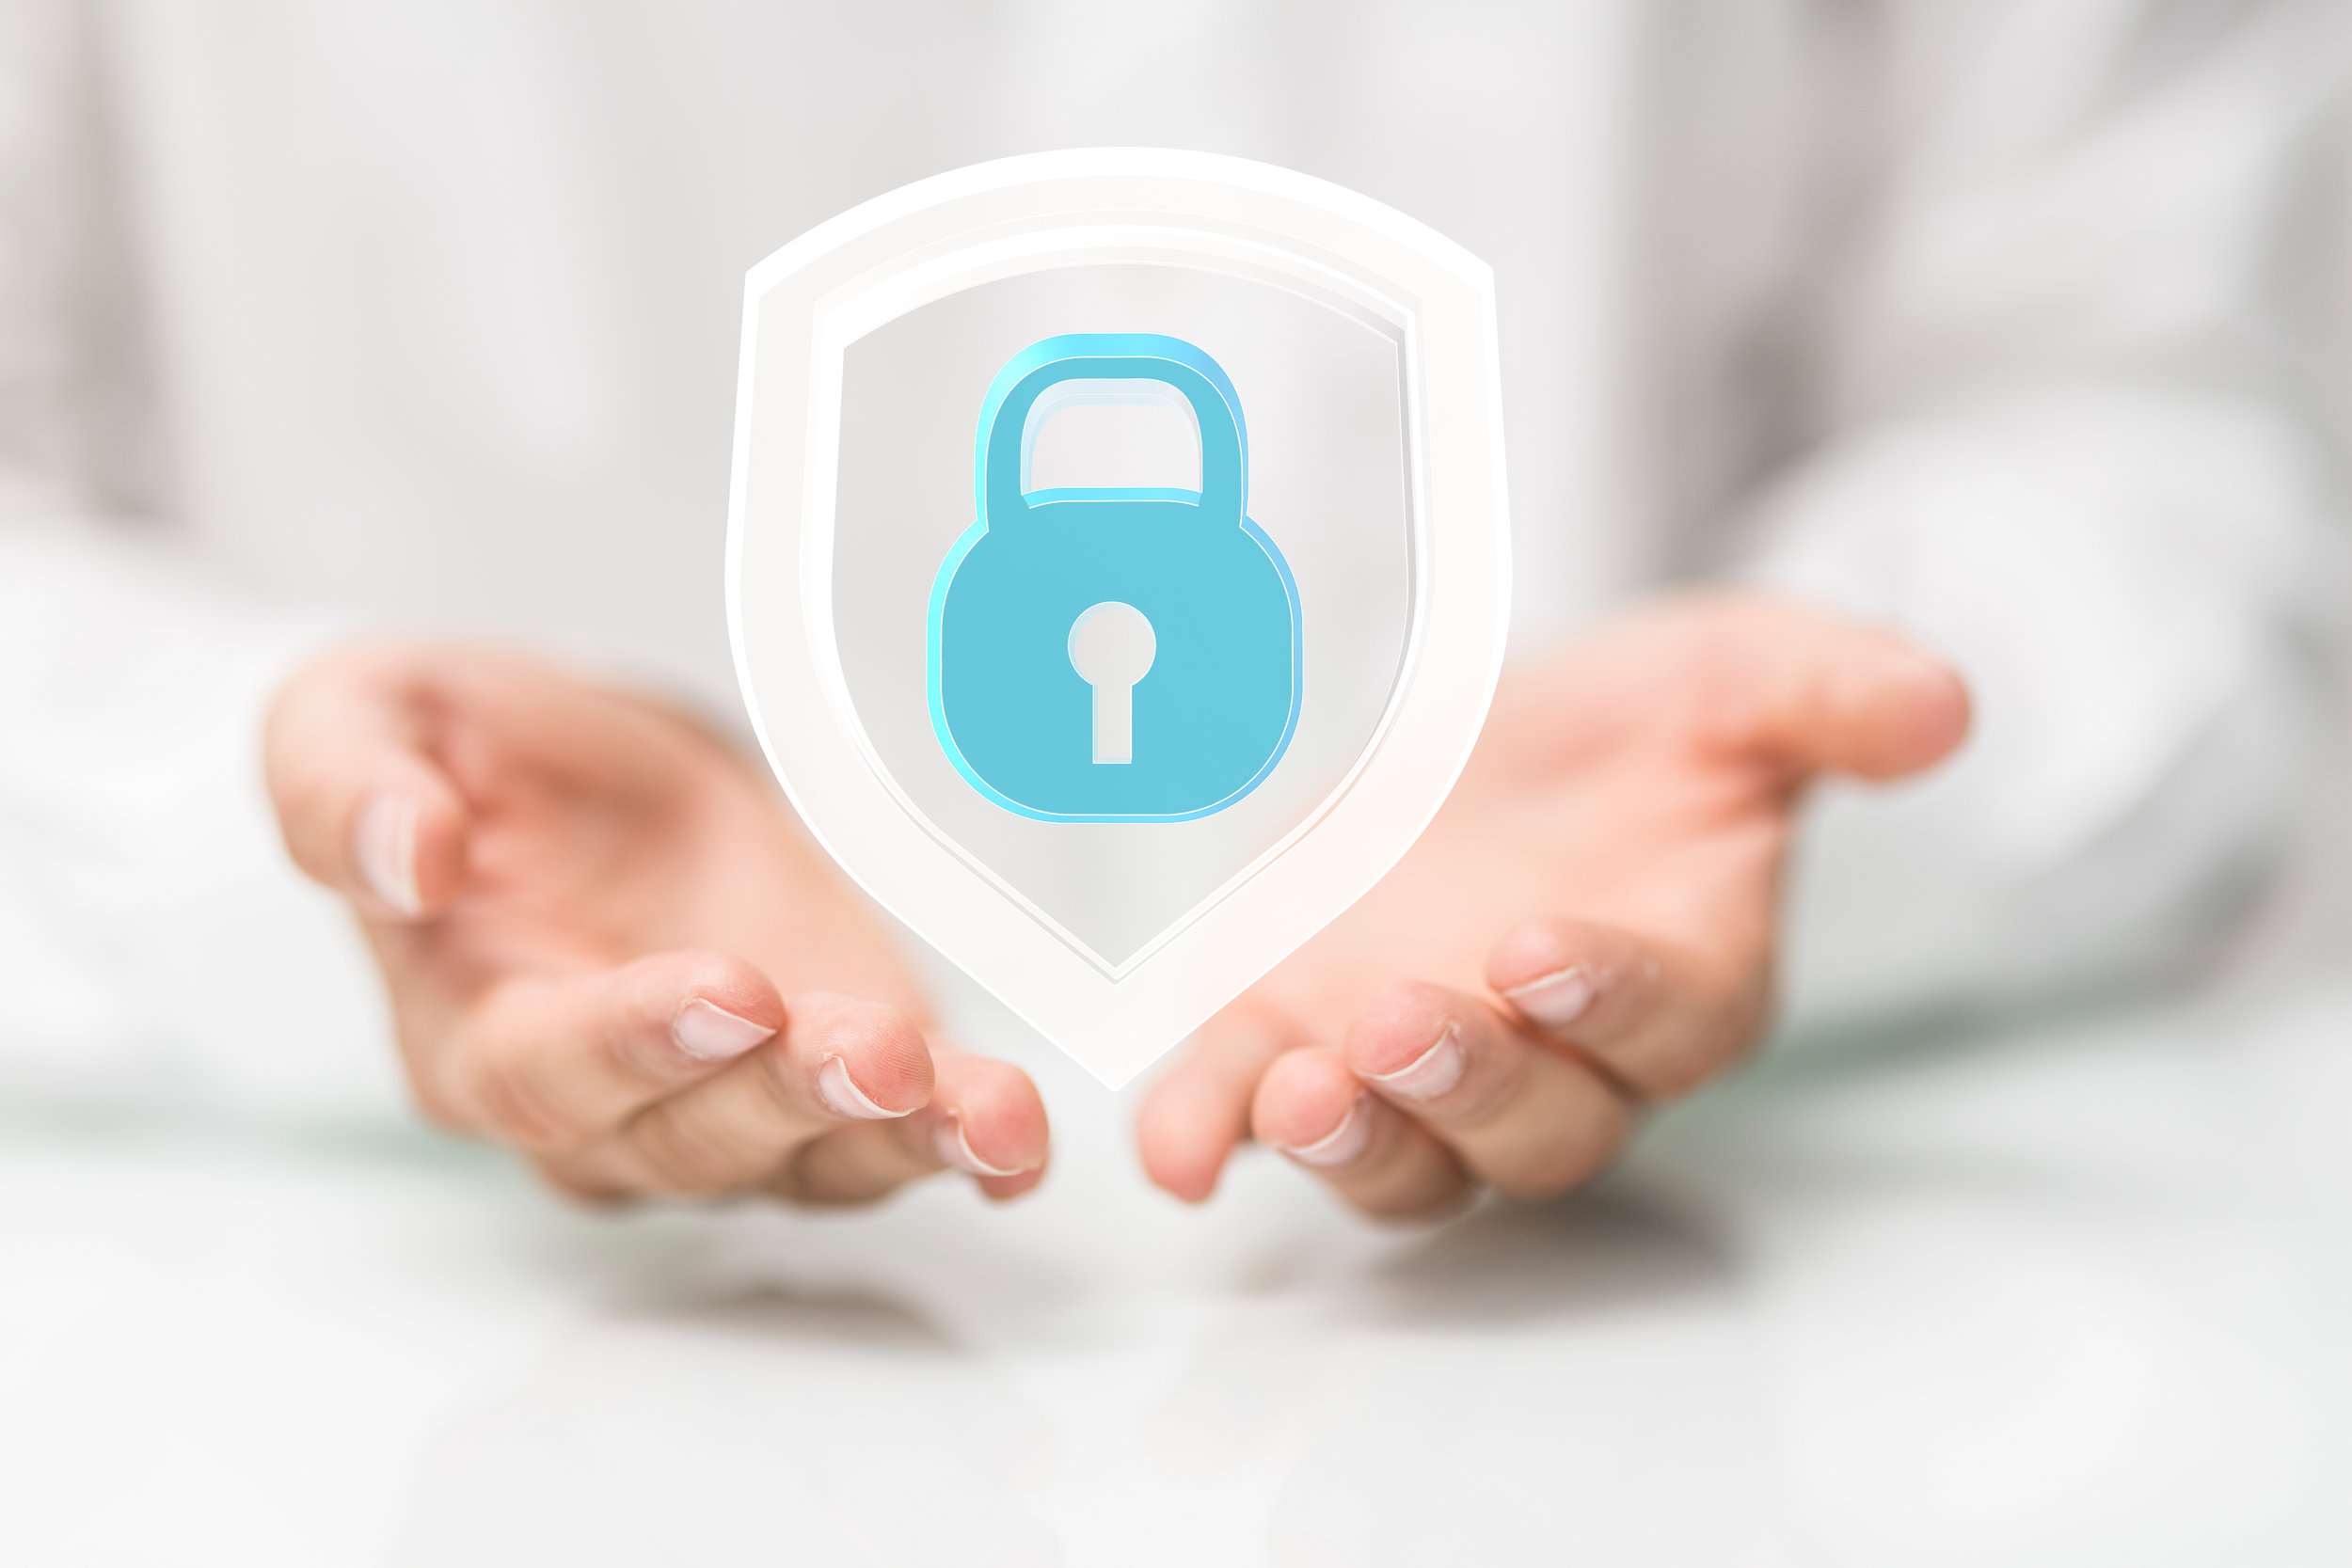 HIPAA Compliant Secure Client Portal - Access your private information